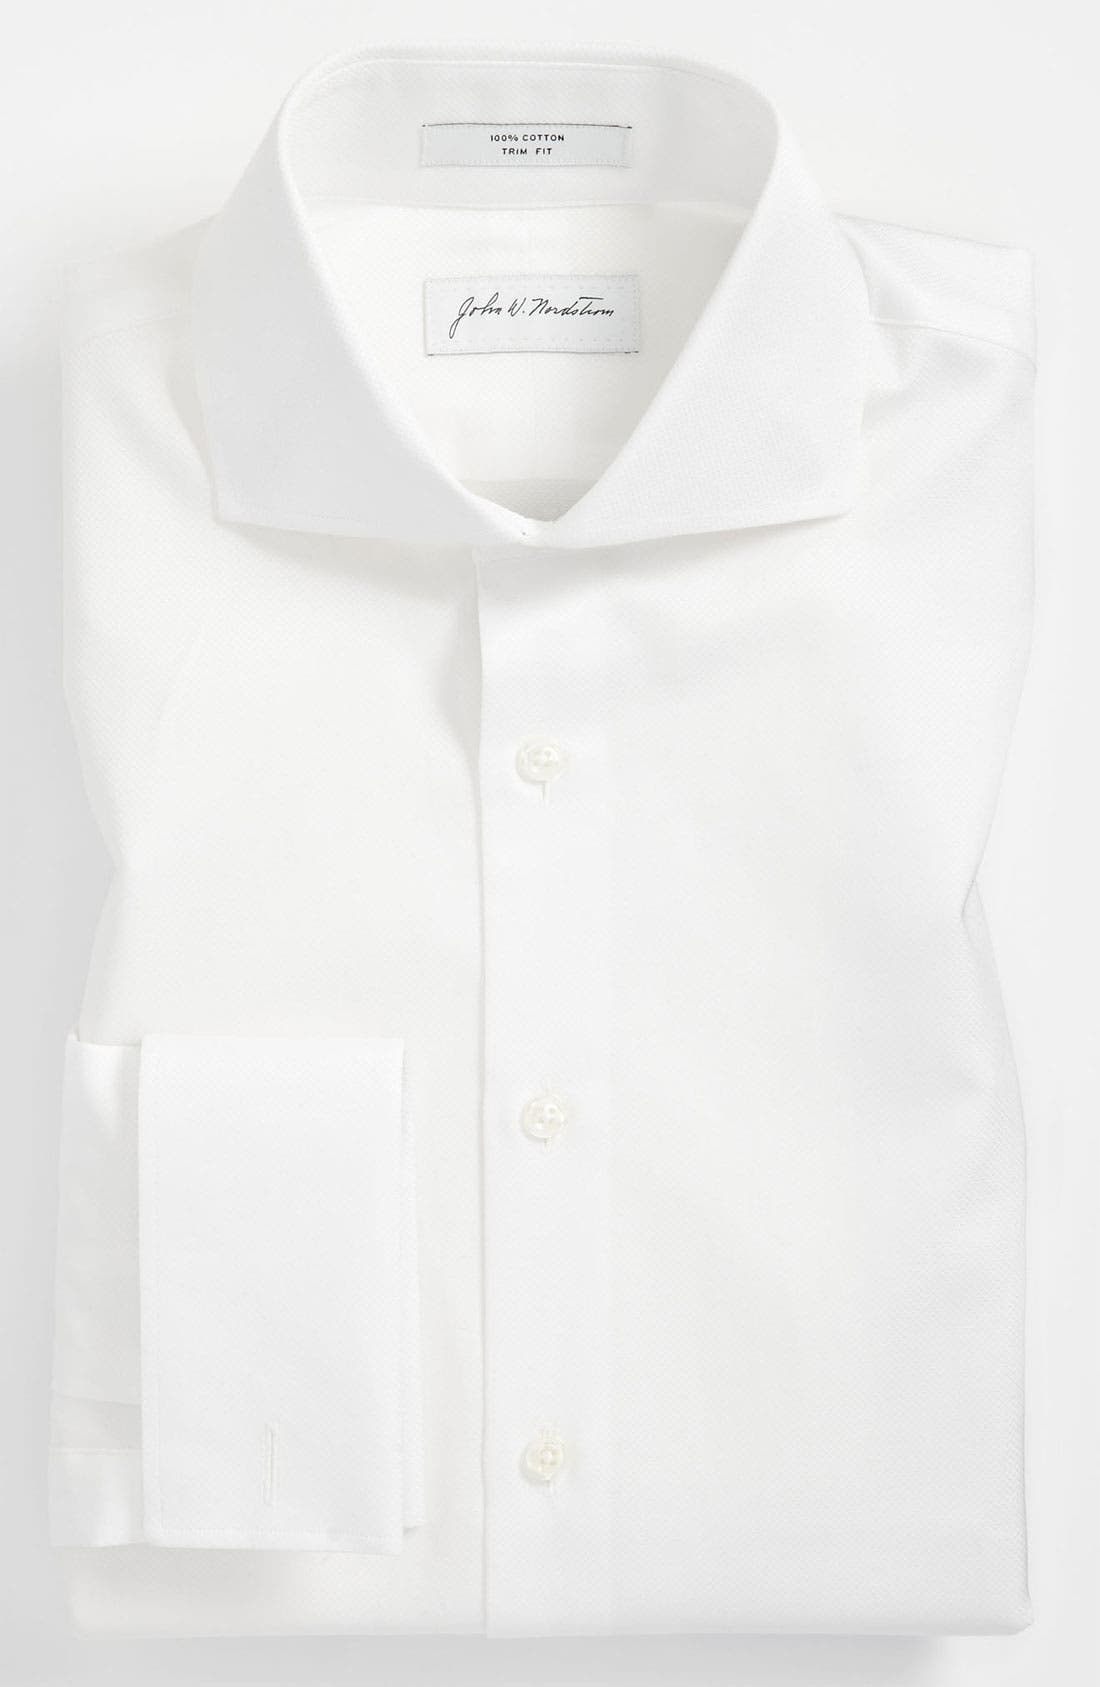 Alternate Image 1 Selected - John W. Nordstrom® Trim Fit Tuxedo Shirt